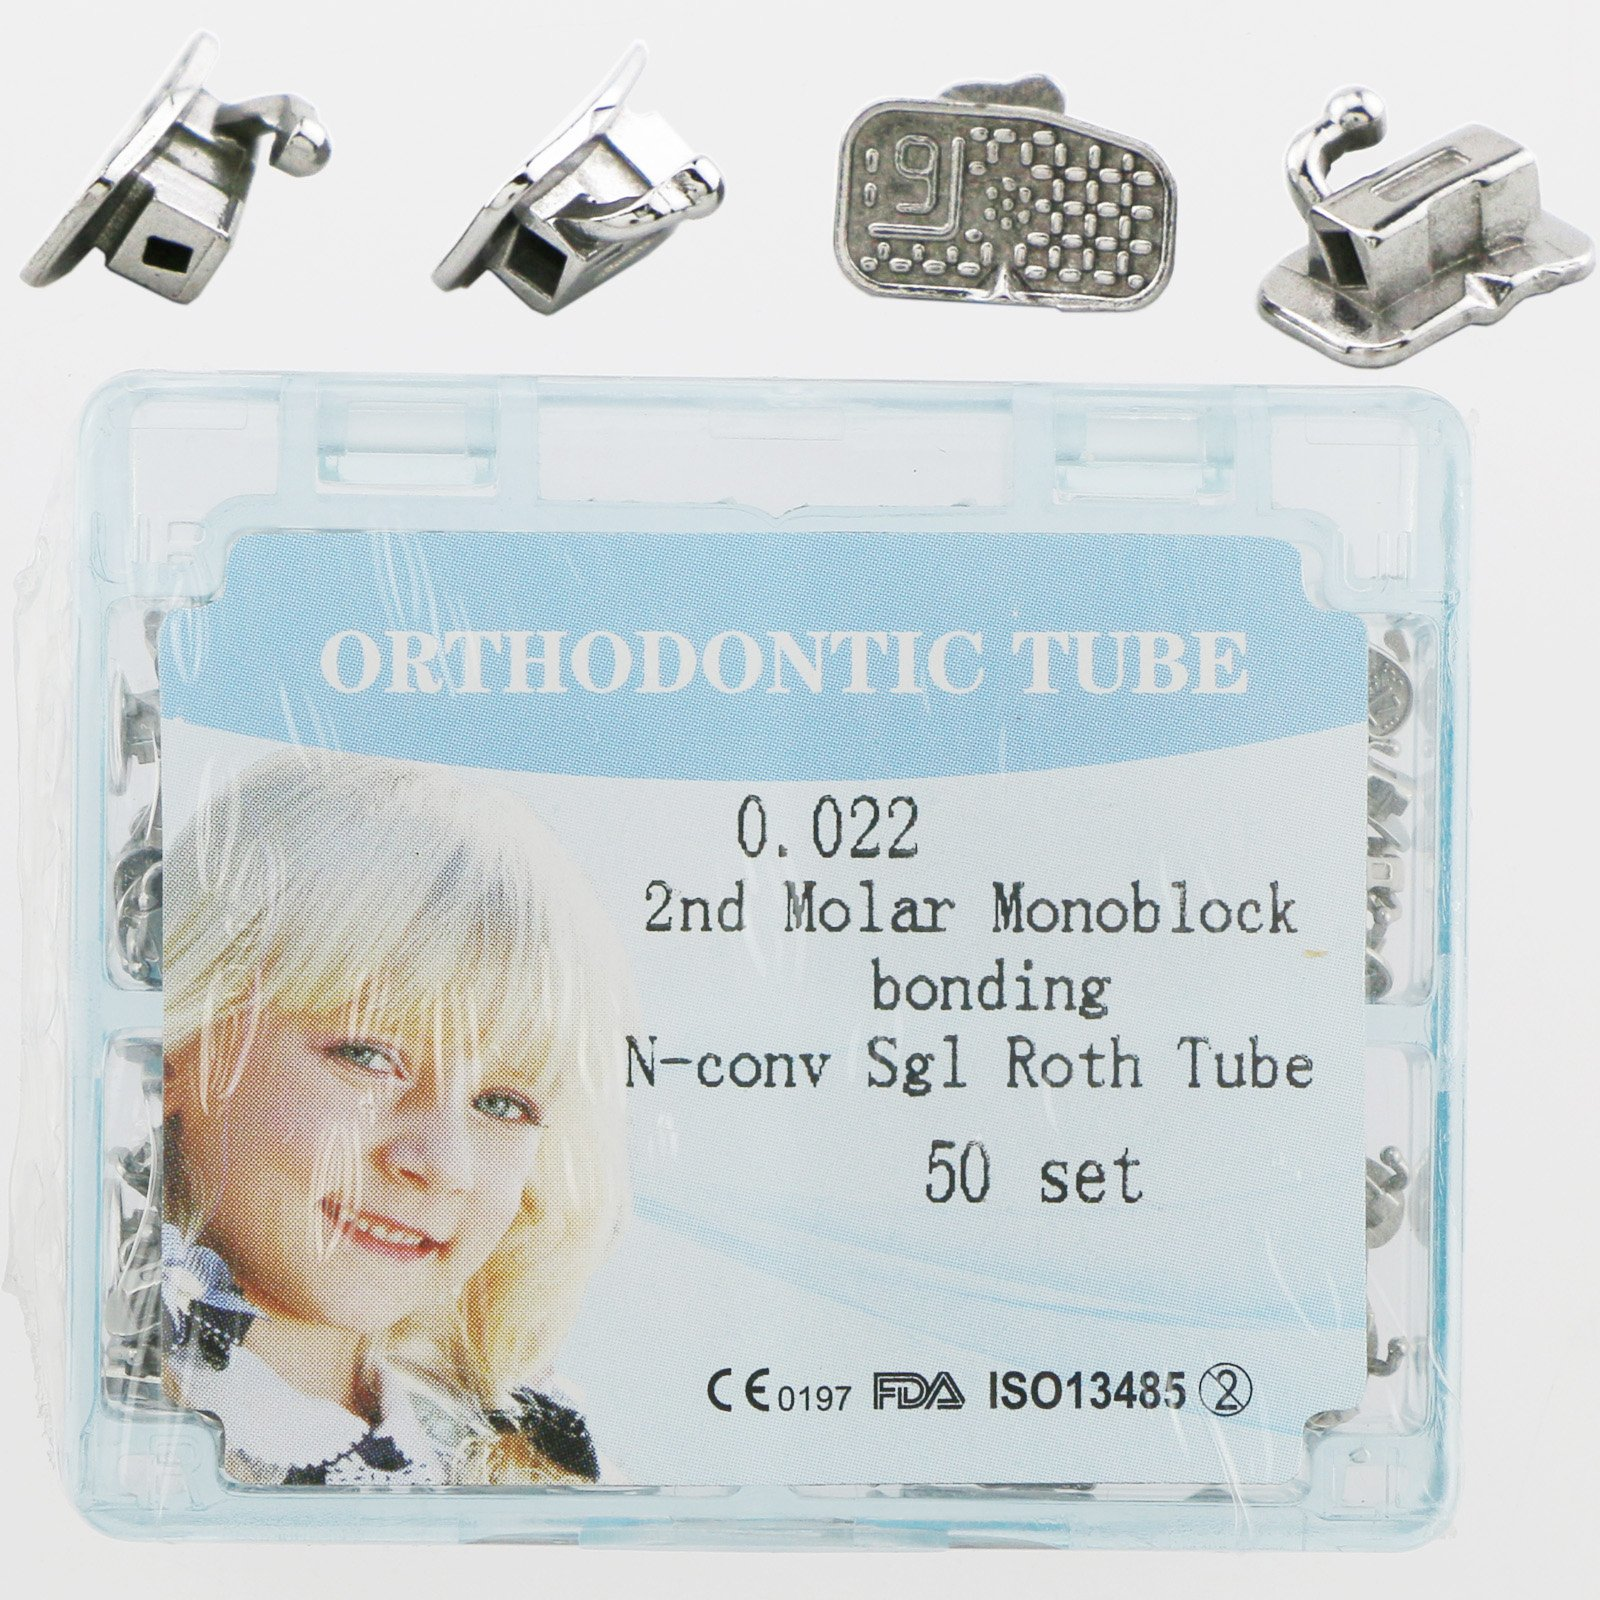 200 Pieces of Orthodontic Tubes the Second Molar Dental Roth 0.022 Bonding non-convertible Monoblock Single Buccal tubes 50 Sets (FDA PROVED)